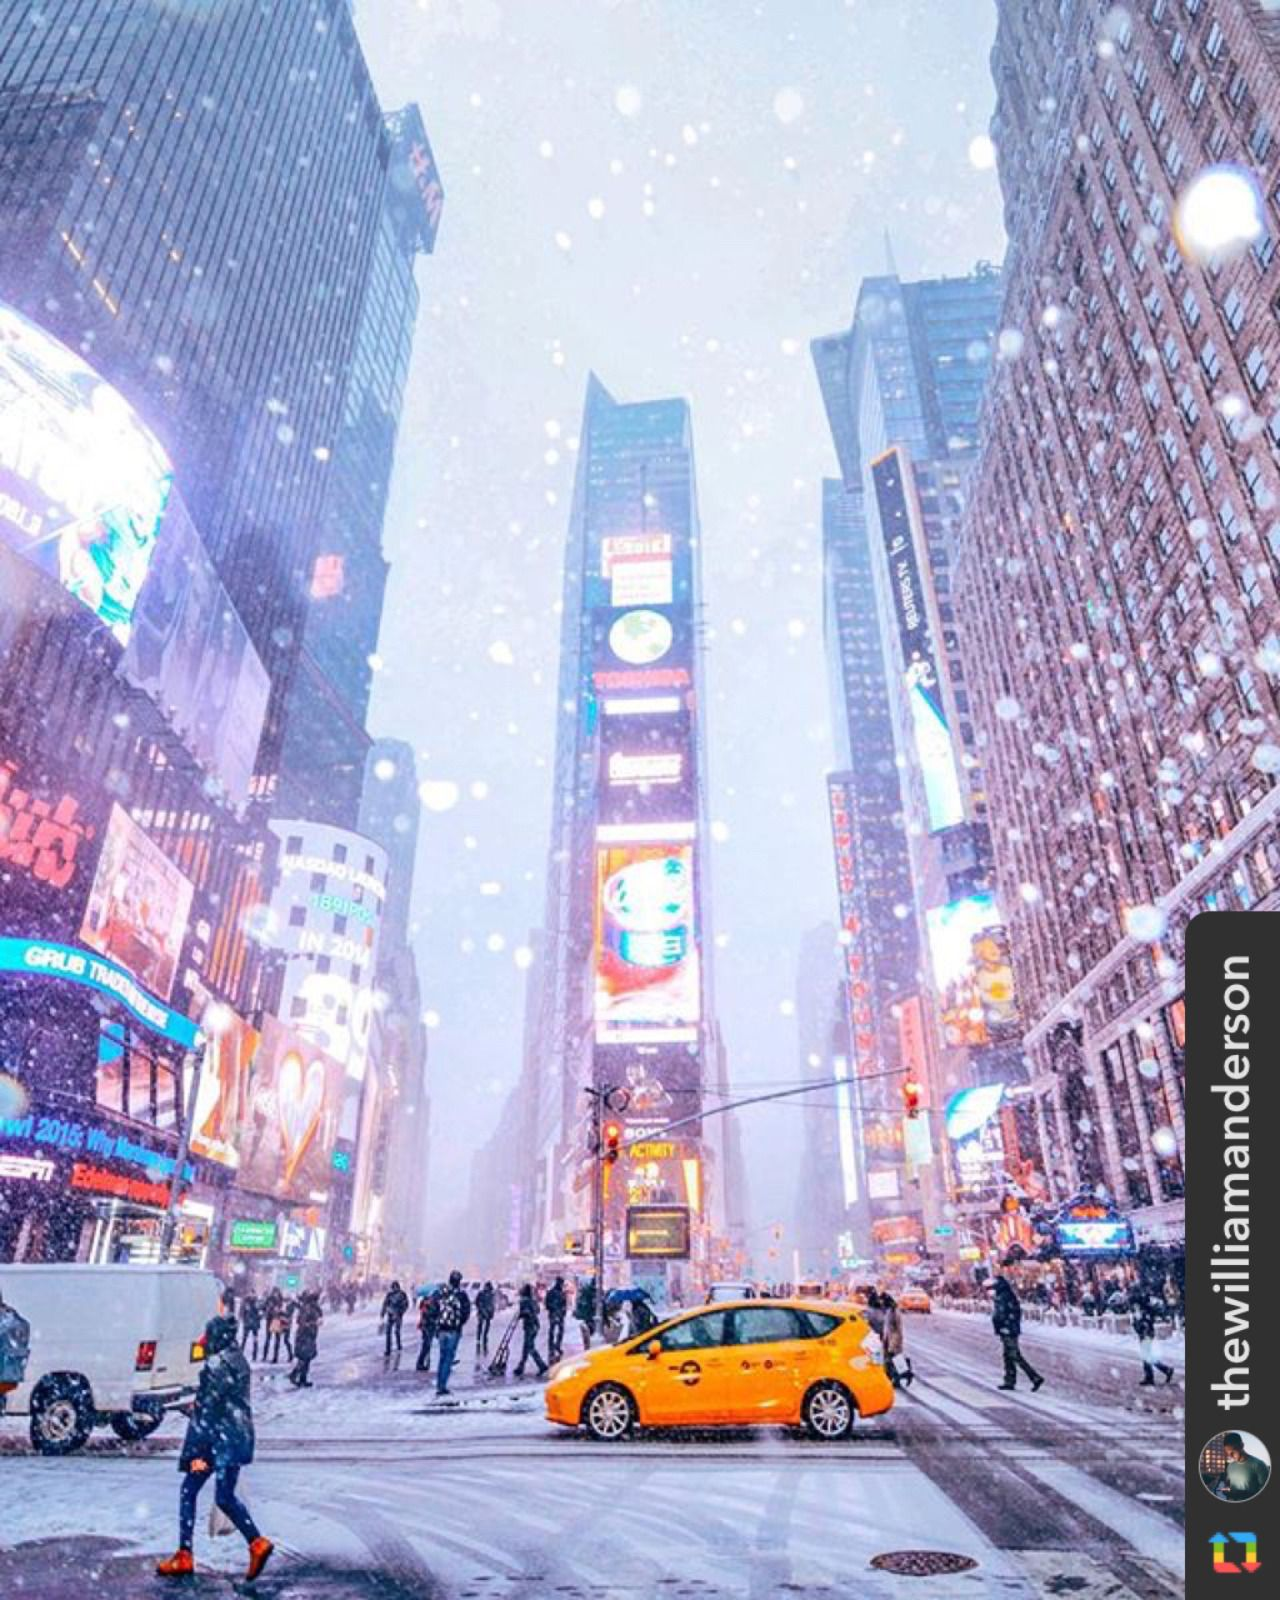 The 25 best ideas about nyc snow on pinterest new york for Best places to go in nyc at night